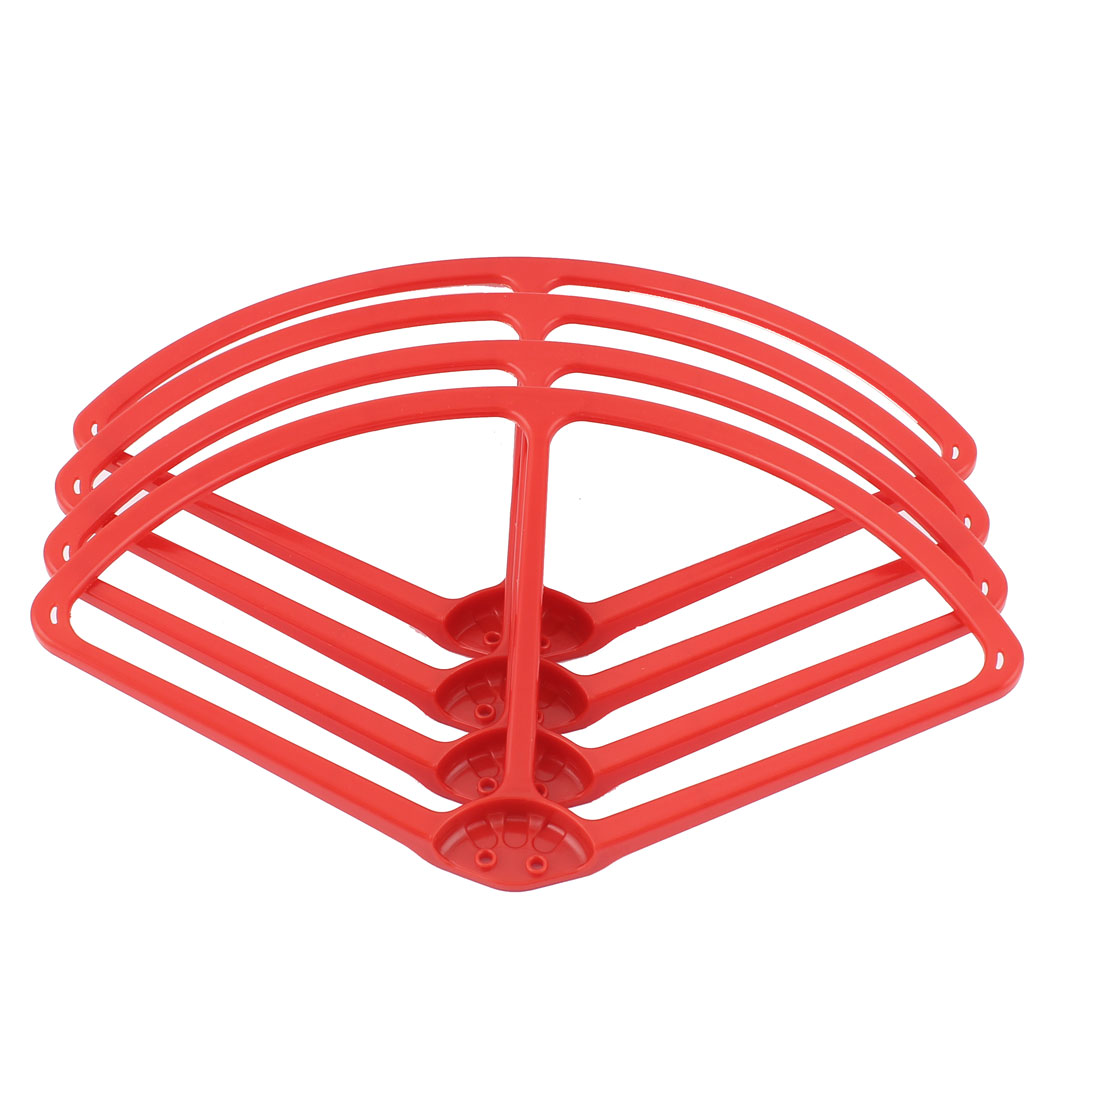 "9"" Propeller Vane Prop Protector Guard Bumper Set Red for DJI Phantom 2 Vision"